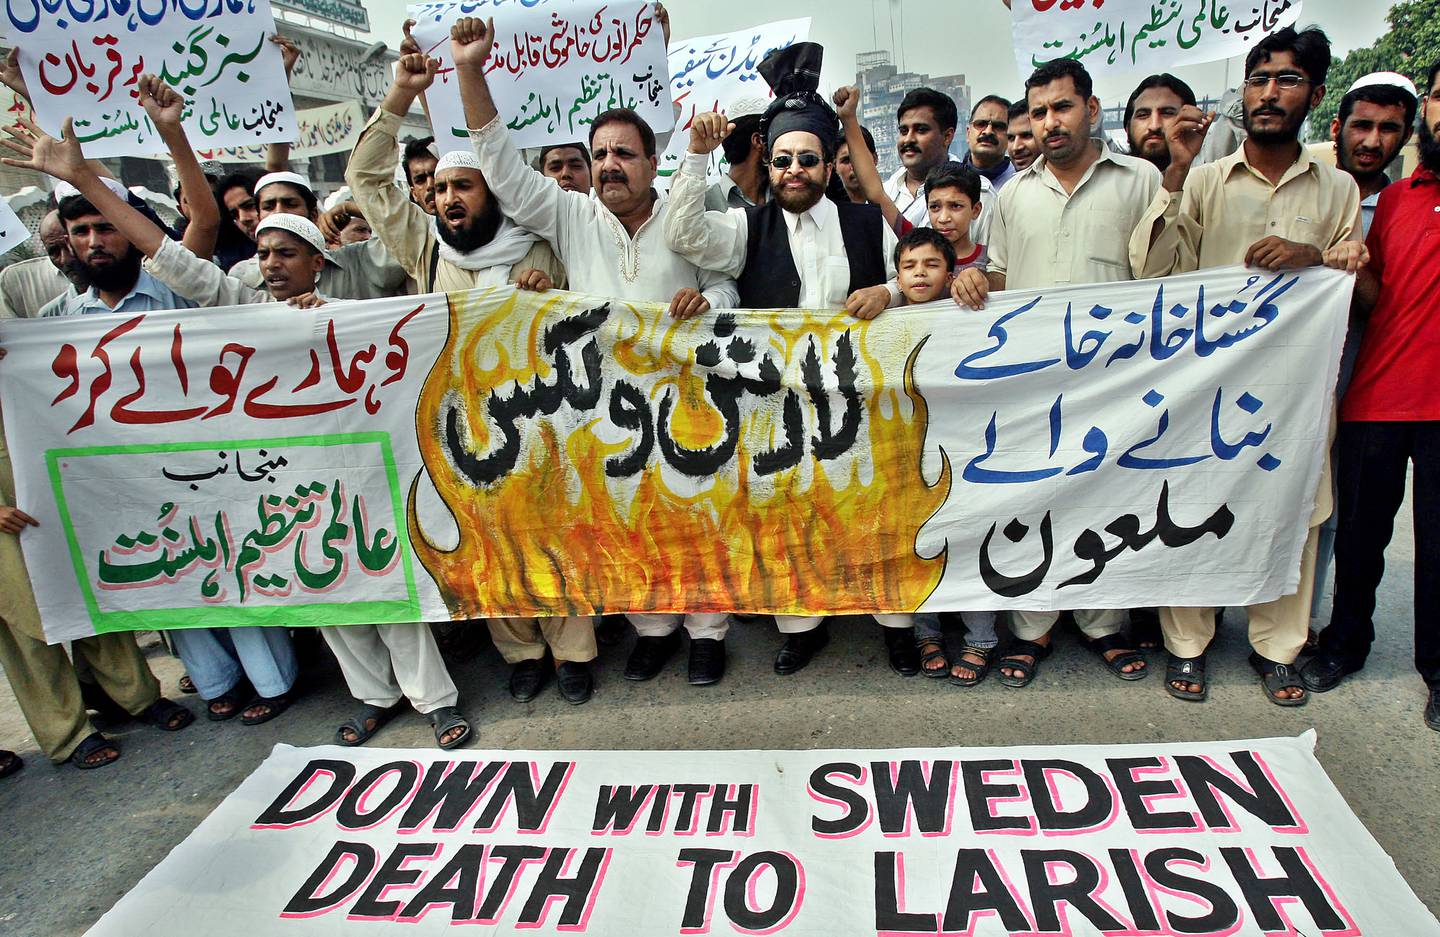 (FILES) In this archive photo taken on August 31, 2007, Pakistani protesters shouted anti-Swedish slogans during a protest in Lahore.  - The Swedish cartoonist Lars Vilks, who lived under police protection after his portrayal of the Prophet Mohammed in 2007 caused death threats, died on October 3, 2021 in a car accident.  (Photo by Arif Ali / AFP)